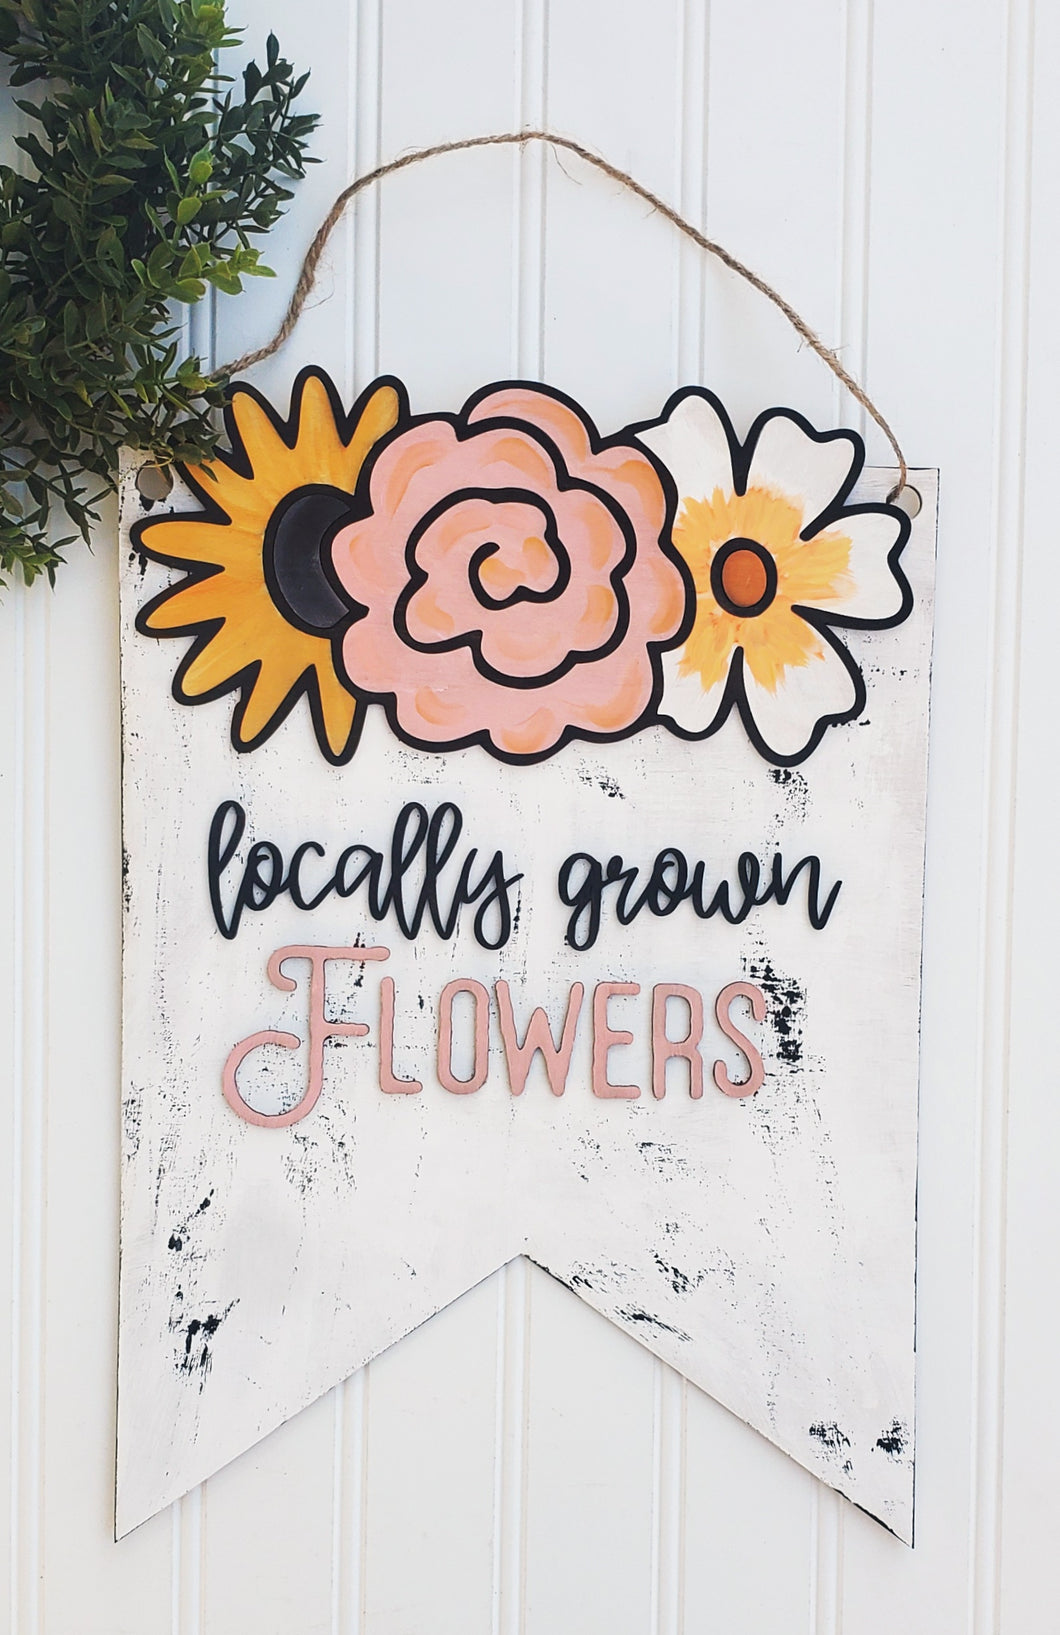 DIY locally grown flowers sign